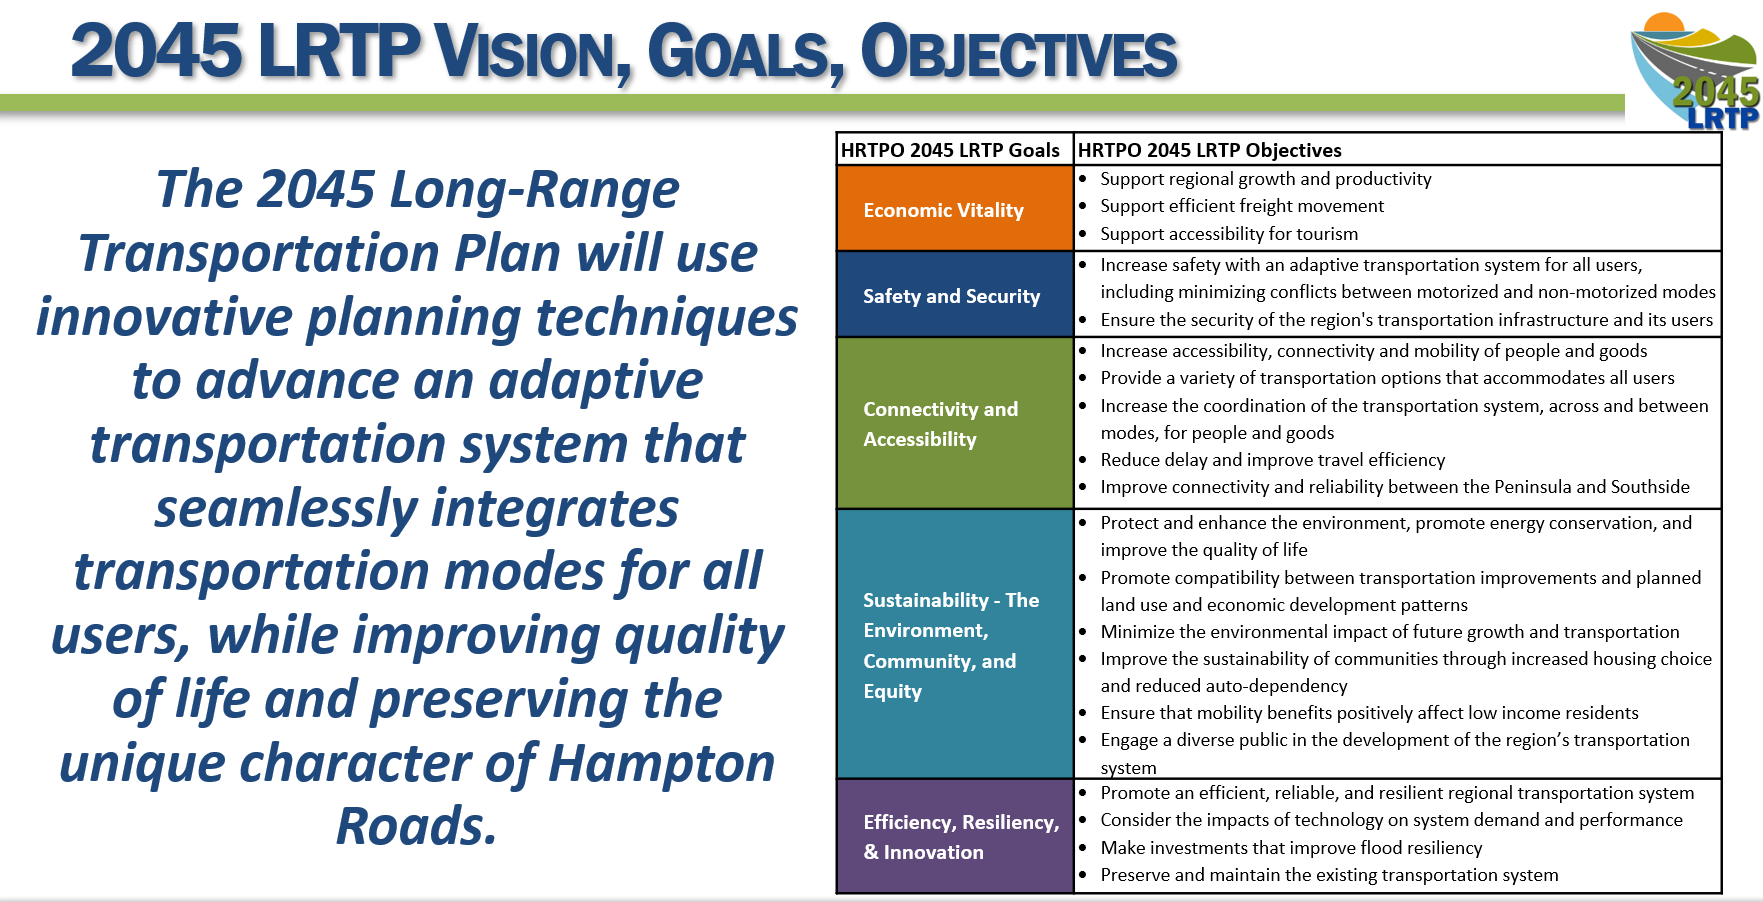 Collection of text and a table graphic outlining the 2045 LRTP Vision, Goals, and Objectives